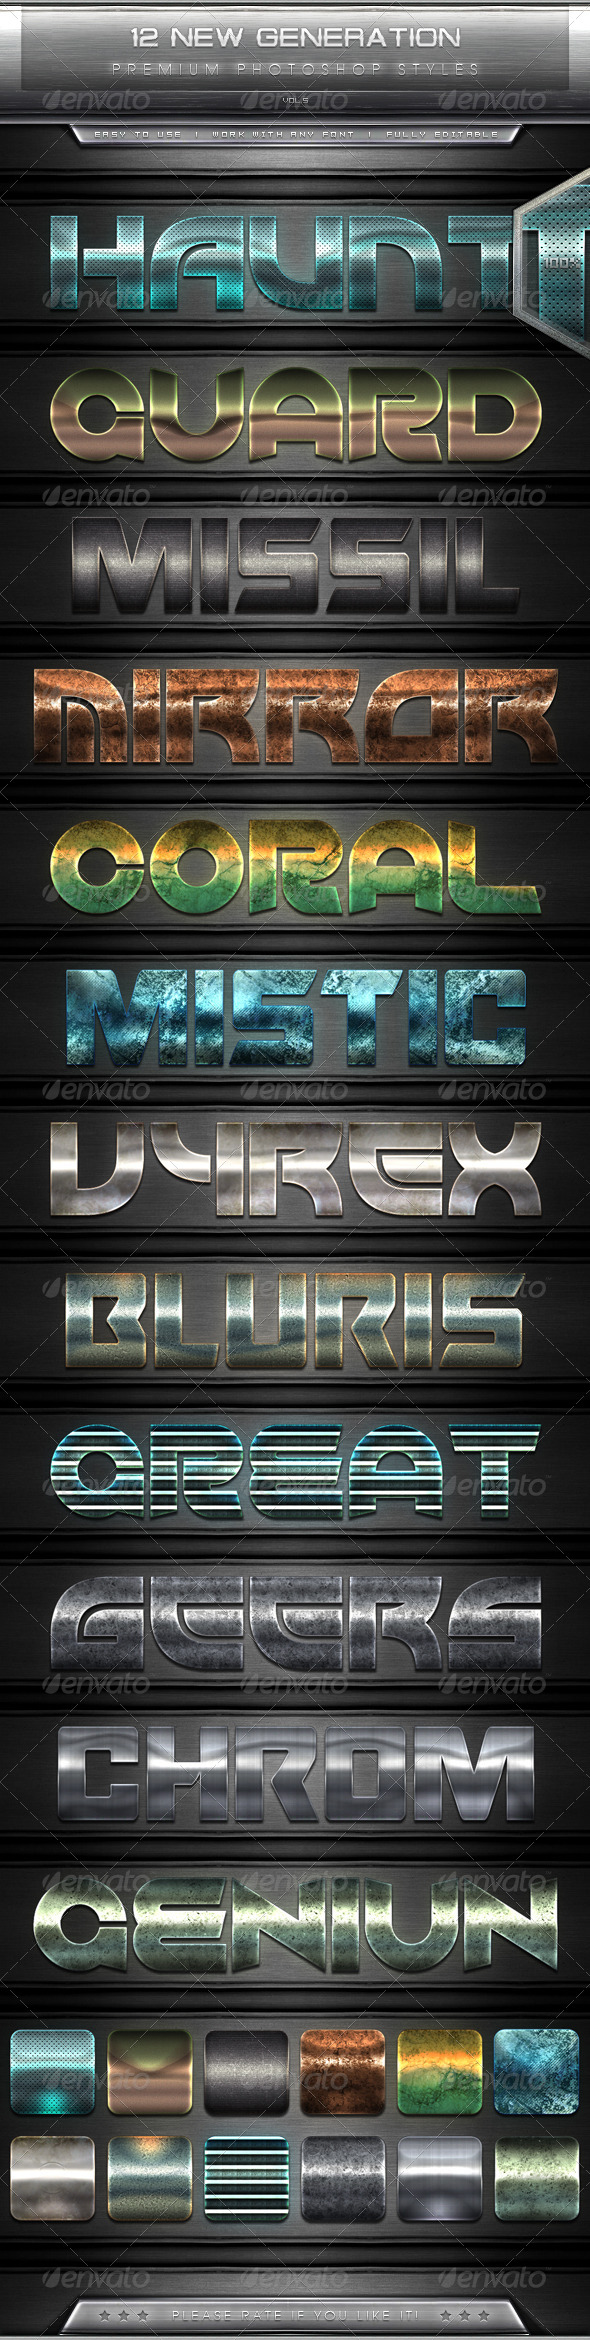 GraphicRiver 12 New Generation Text Effect Styles Vol.5 7725933